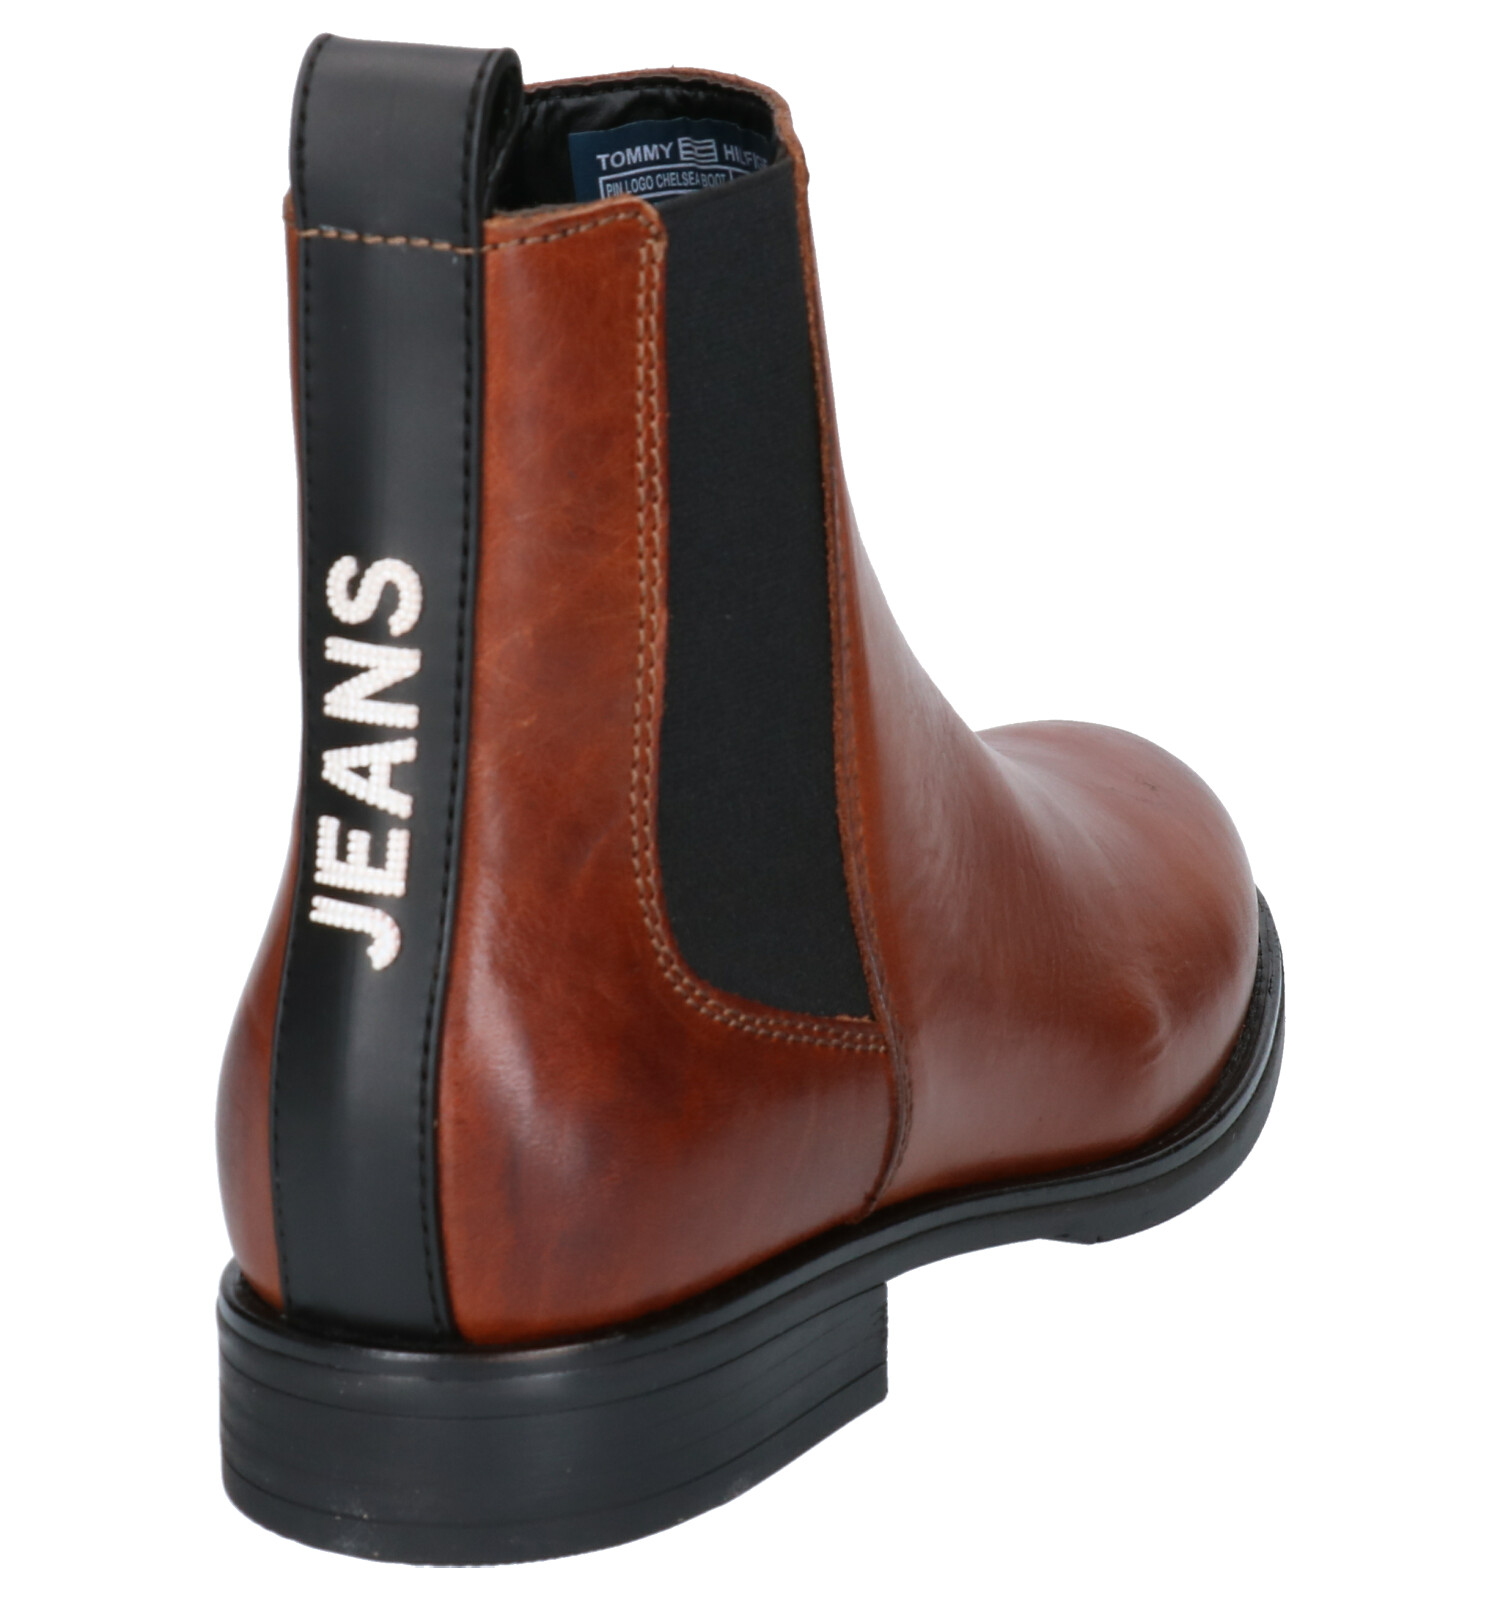 Hilfiger Tommy Boots Boots Boots Tommy Tommy Cognac Hilfiger Cognac Tommy Hilfiger Cognac 8OPZXkNn0w